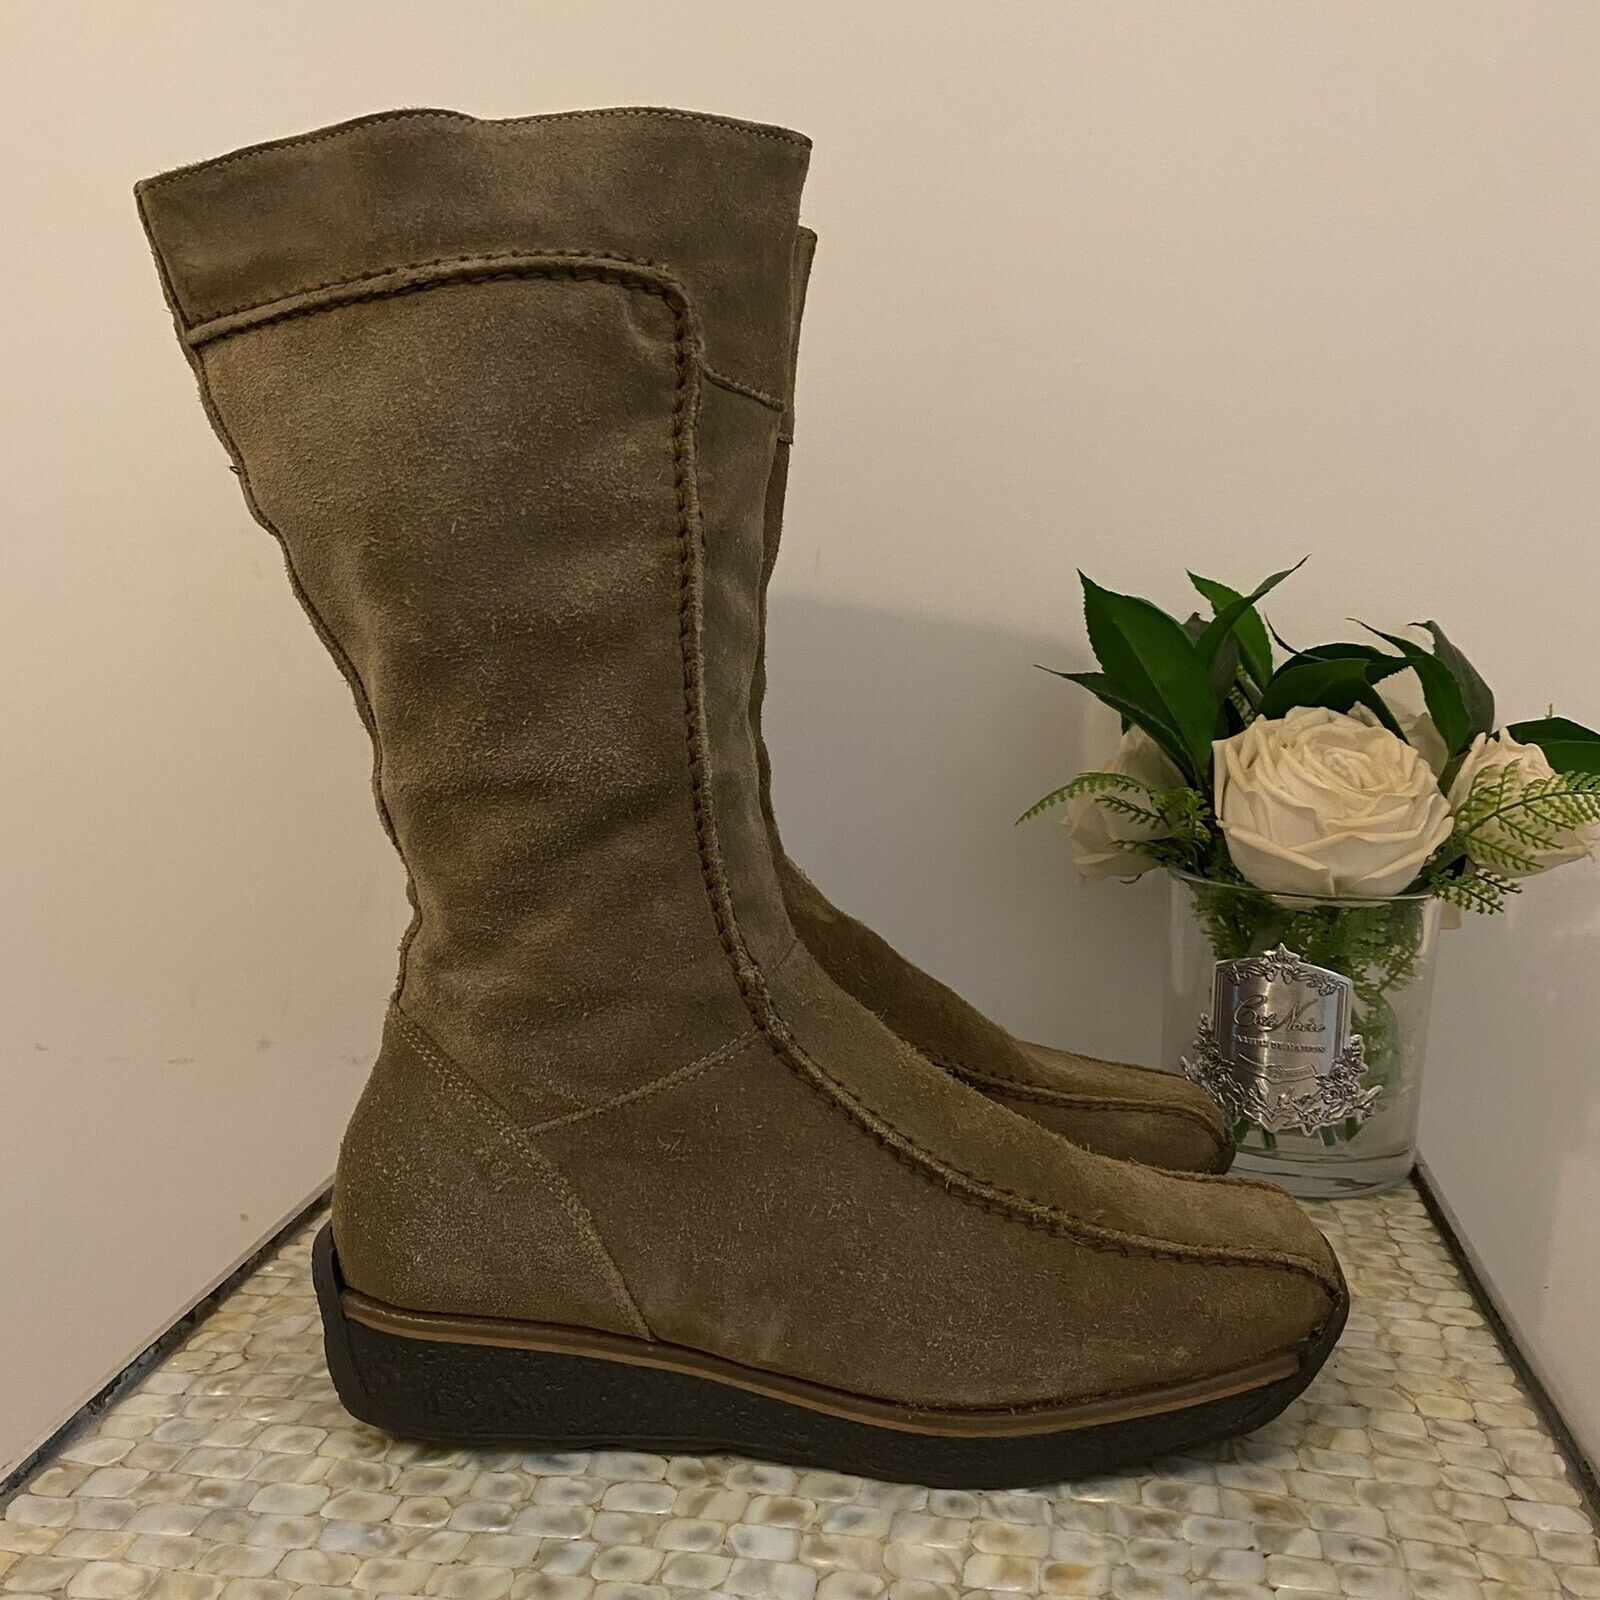 Aldo UK 6 39 brown suede flat ankle causal boots boho zip side comfy winter VGC